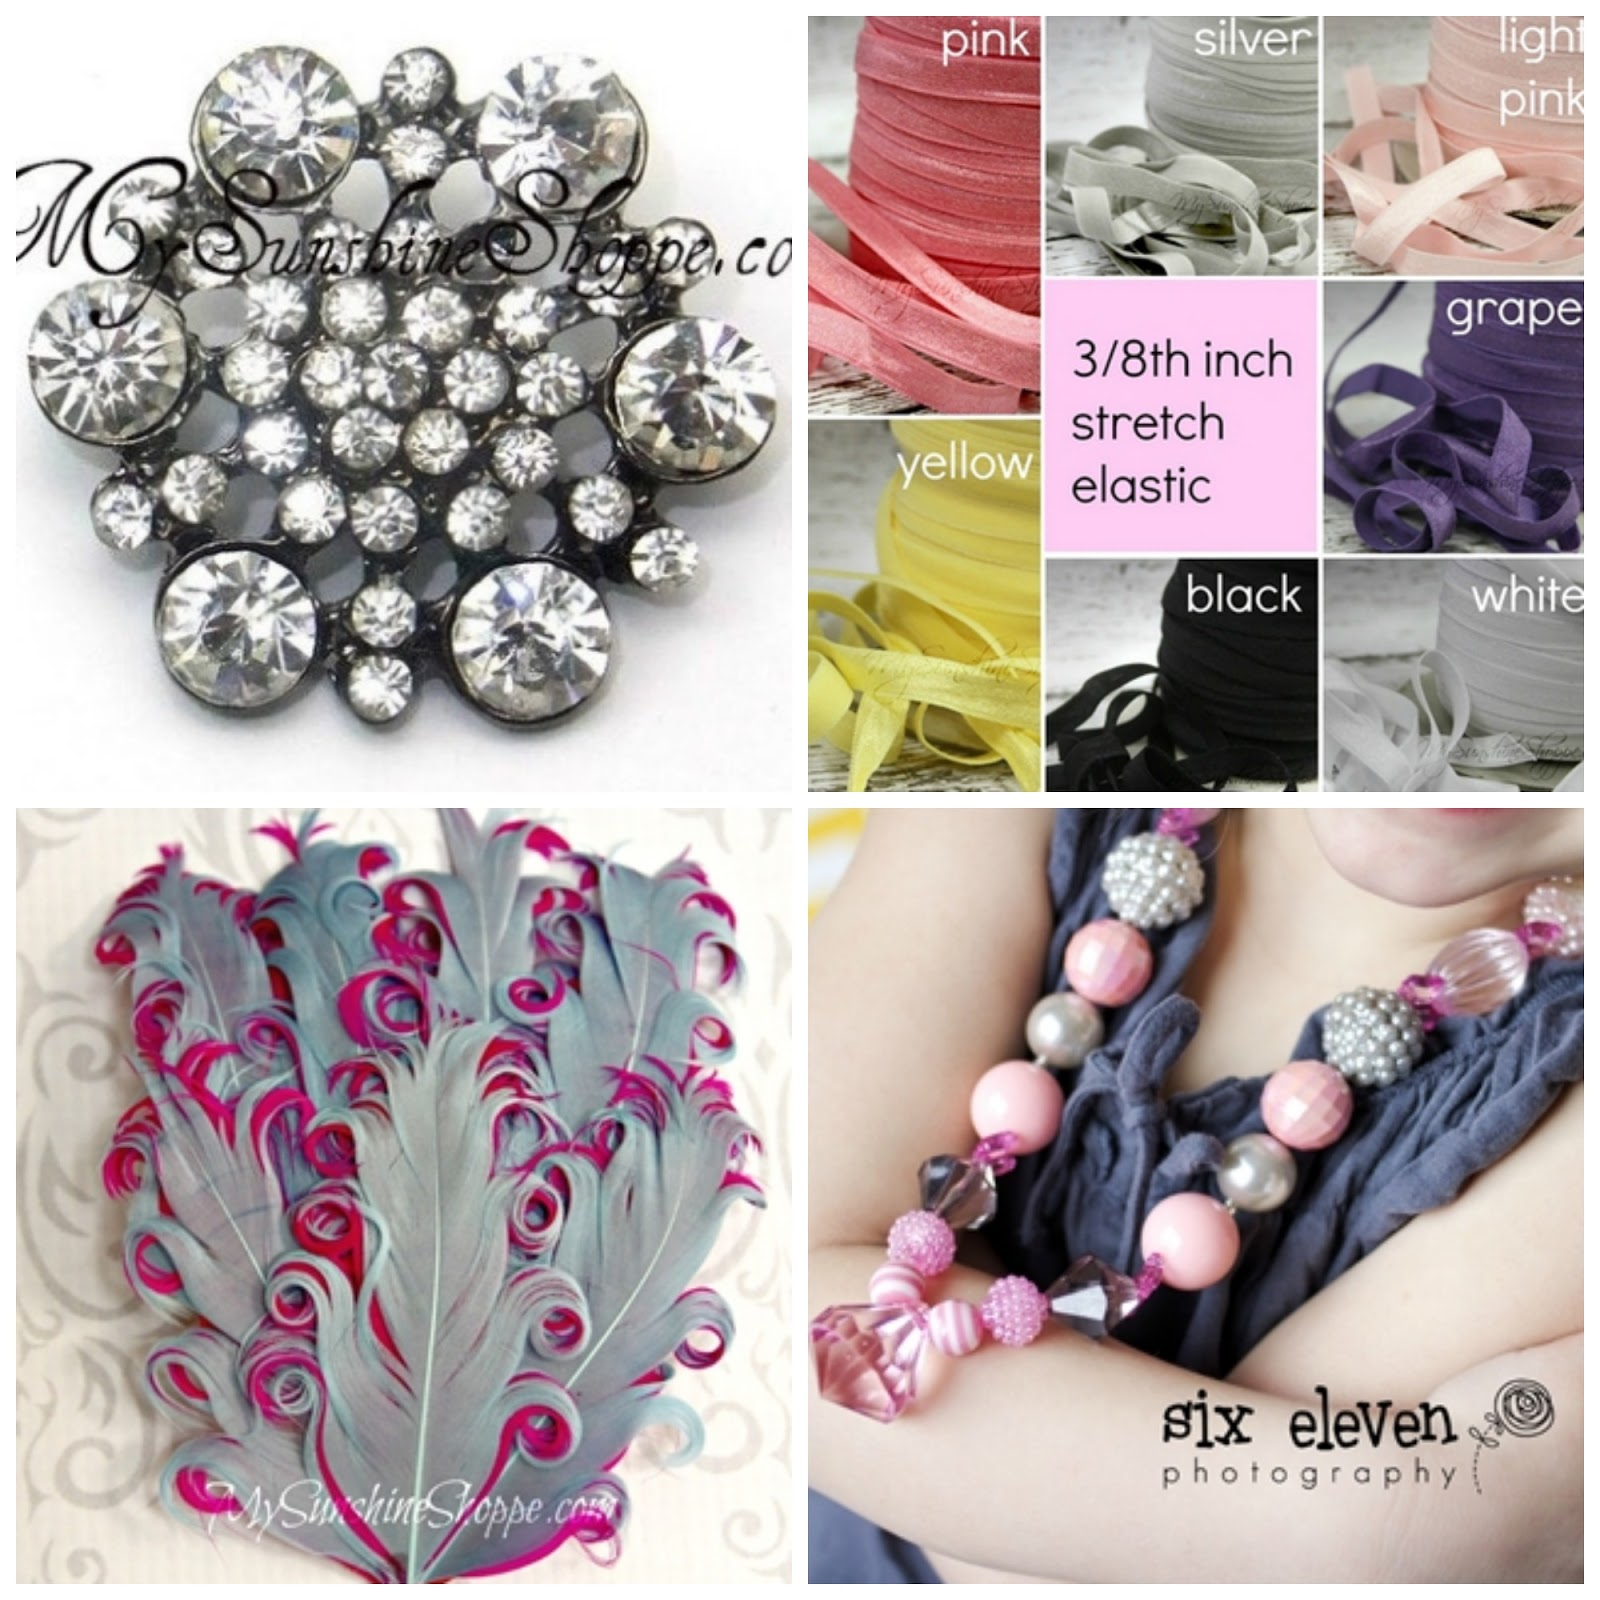 Wholesale Craft Supplies Fort Worth Texas